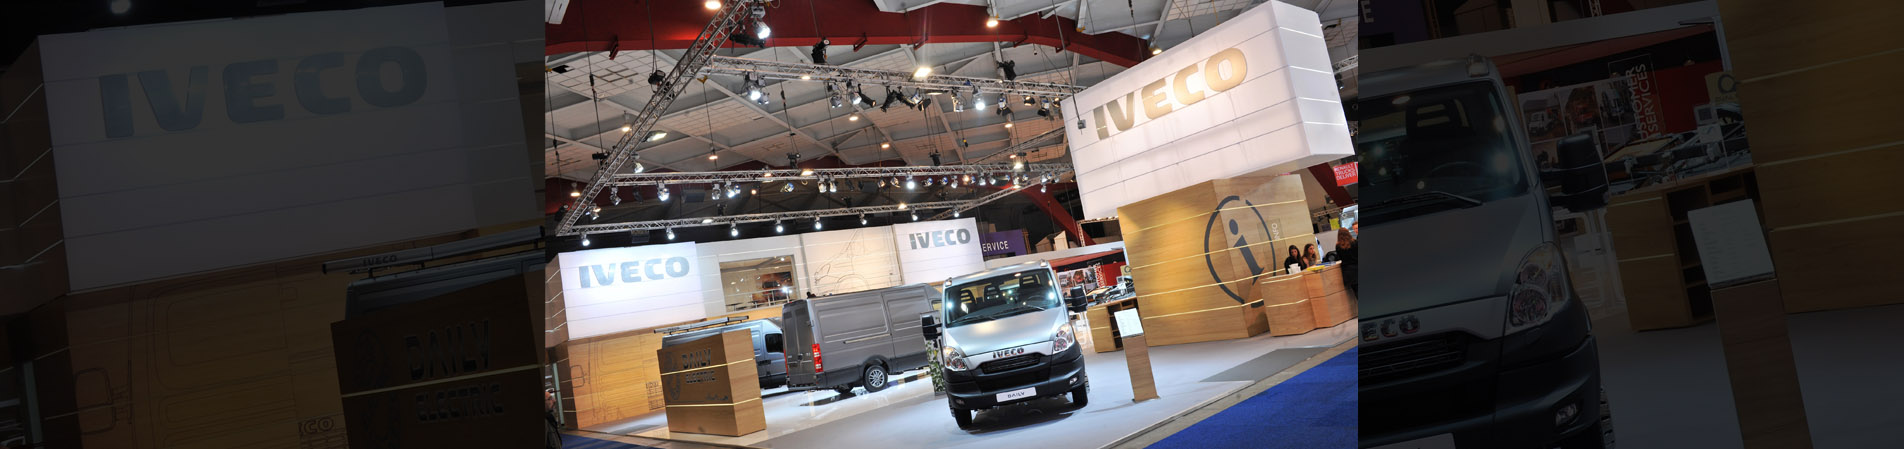 itb events slider_beurs